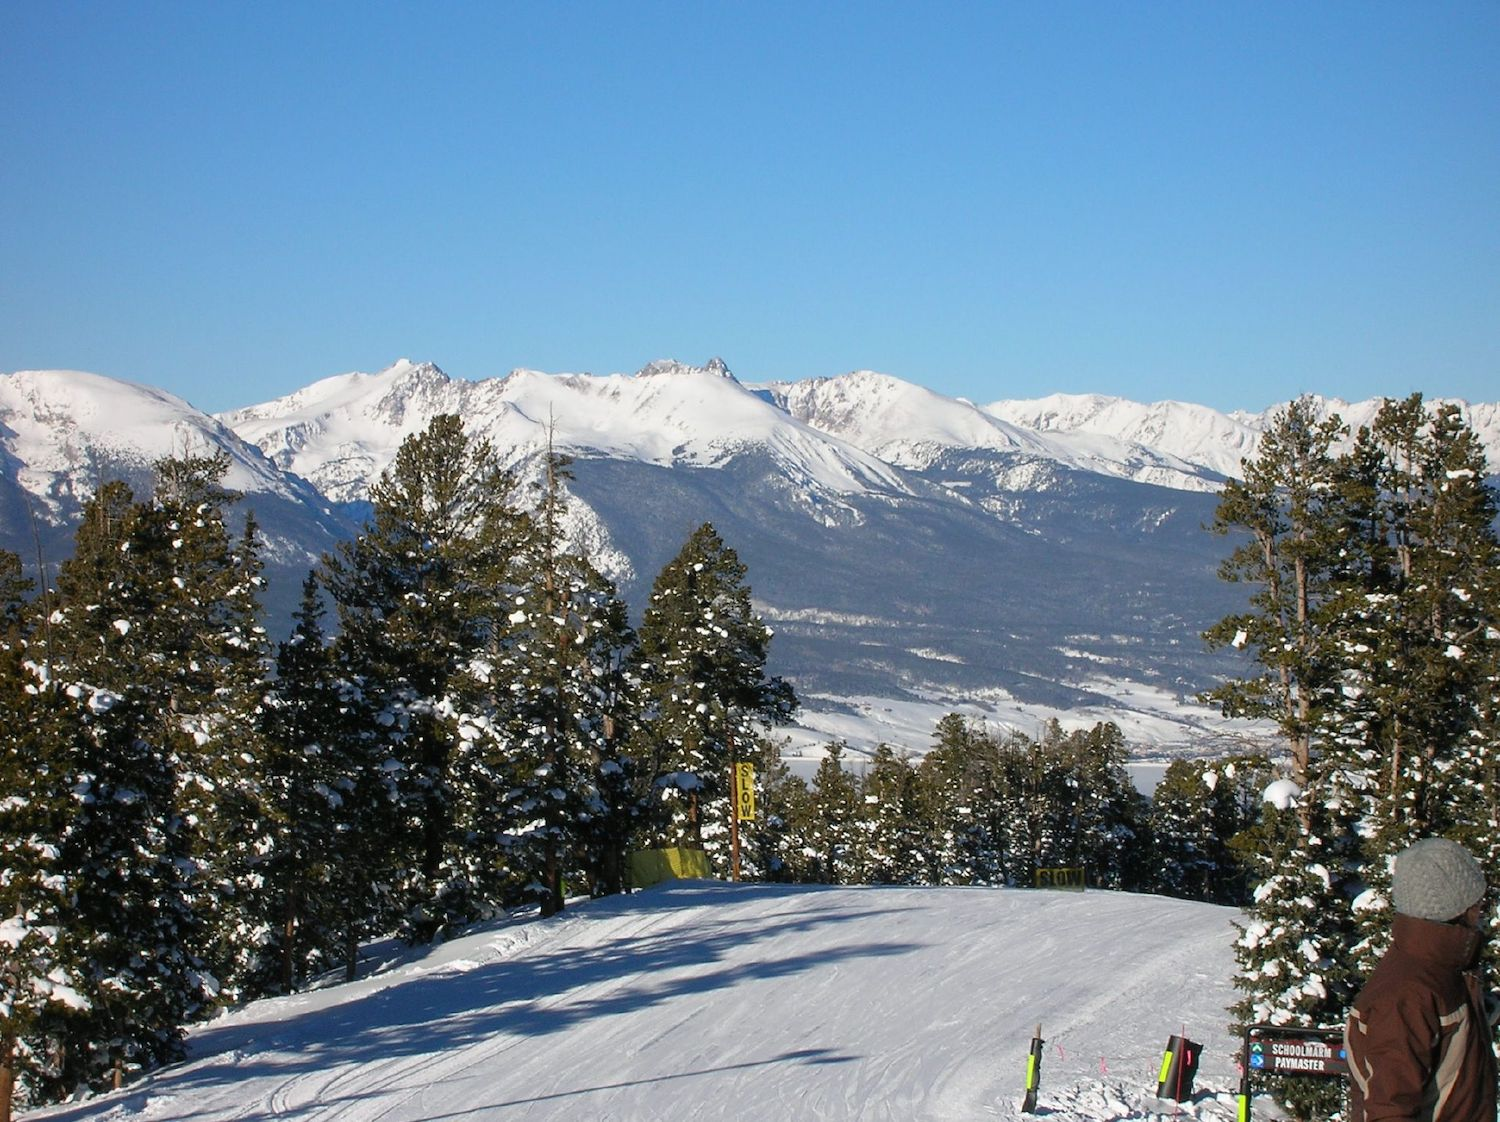 Luxury Rental Homes in Breckenridge and Summit County